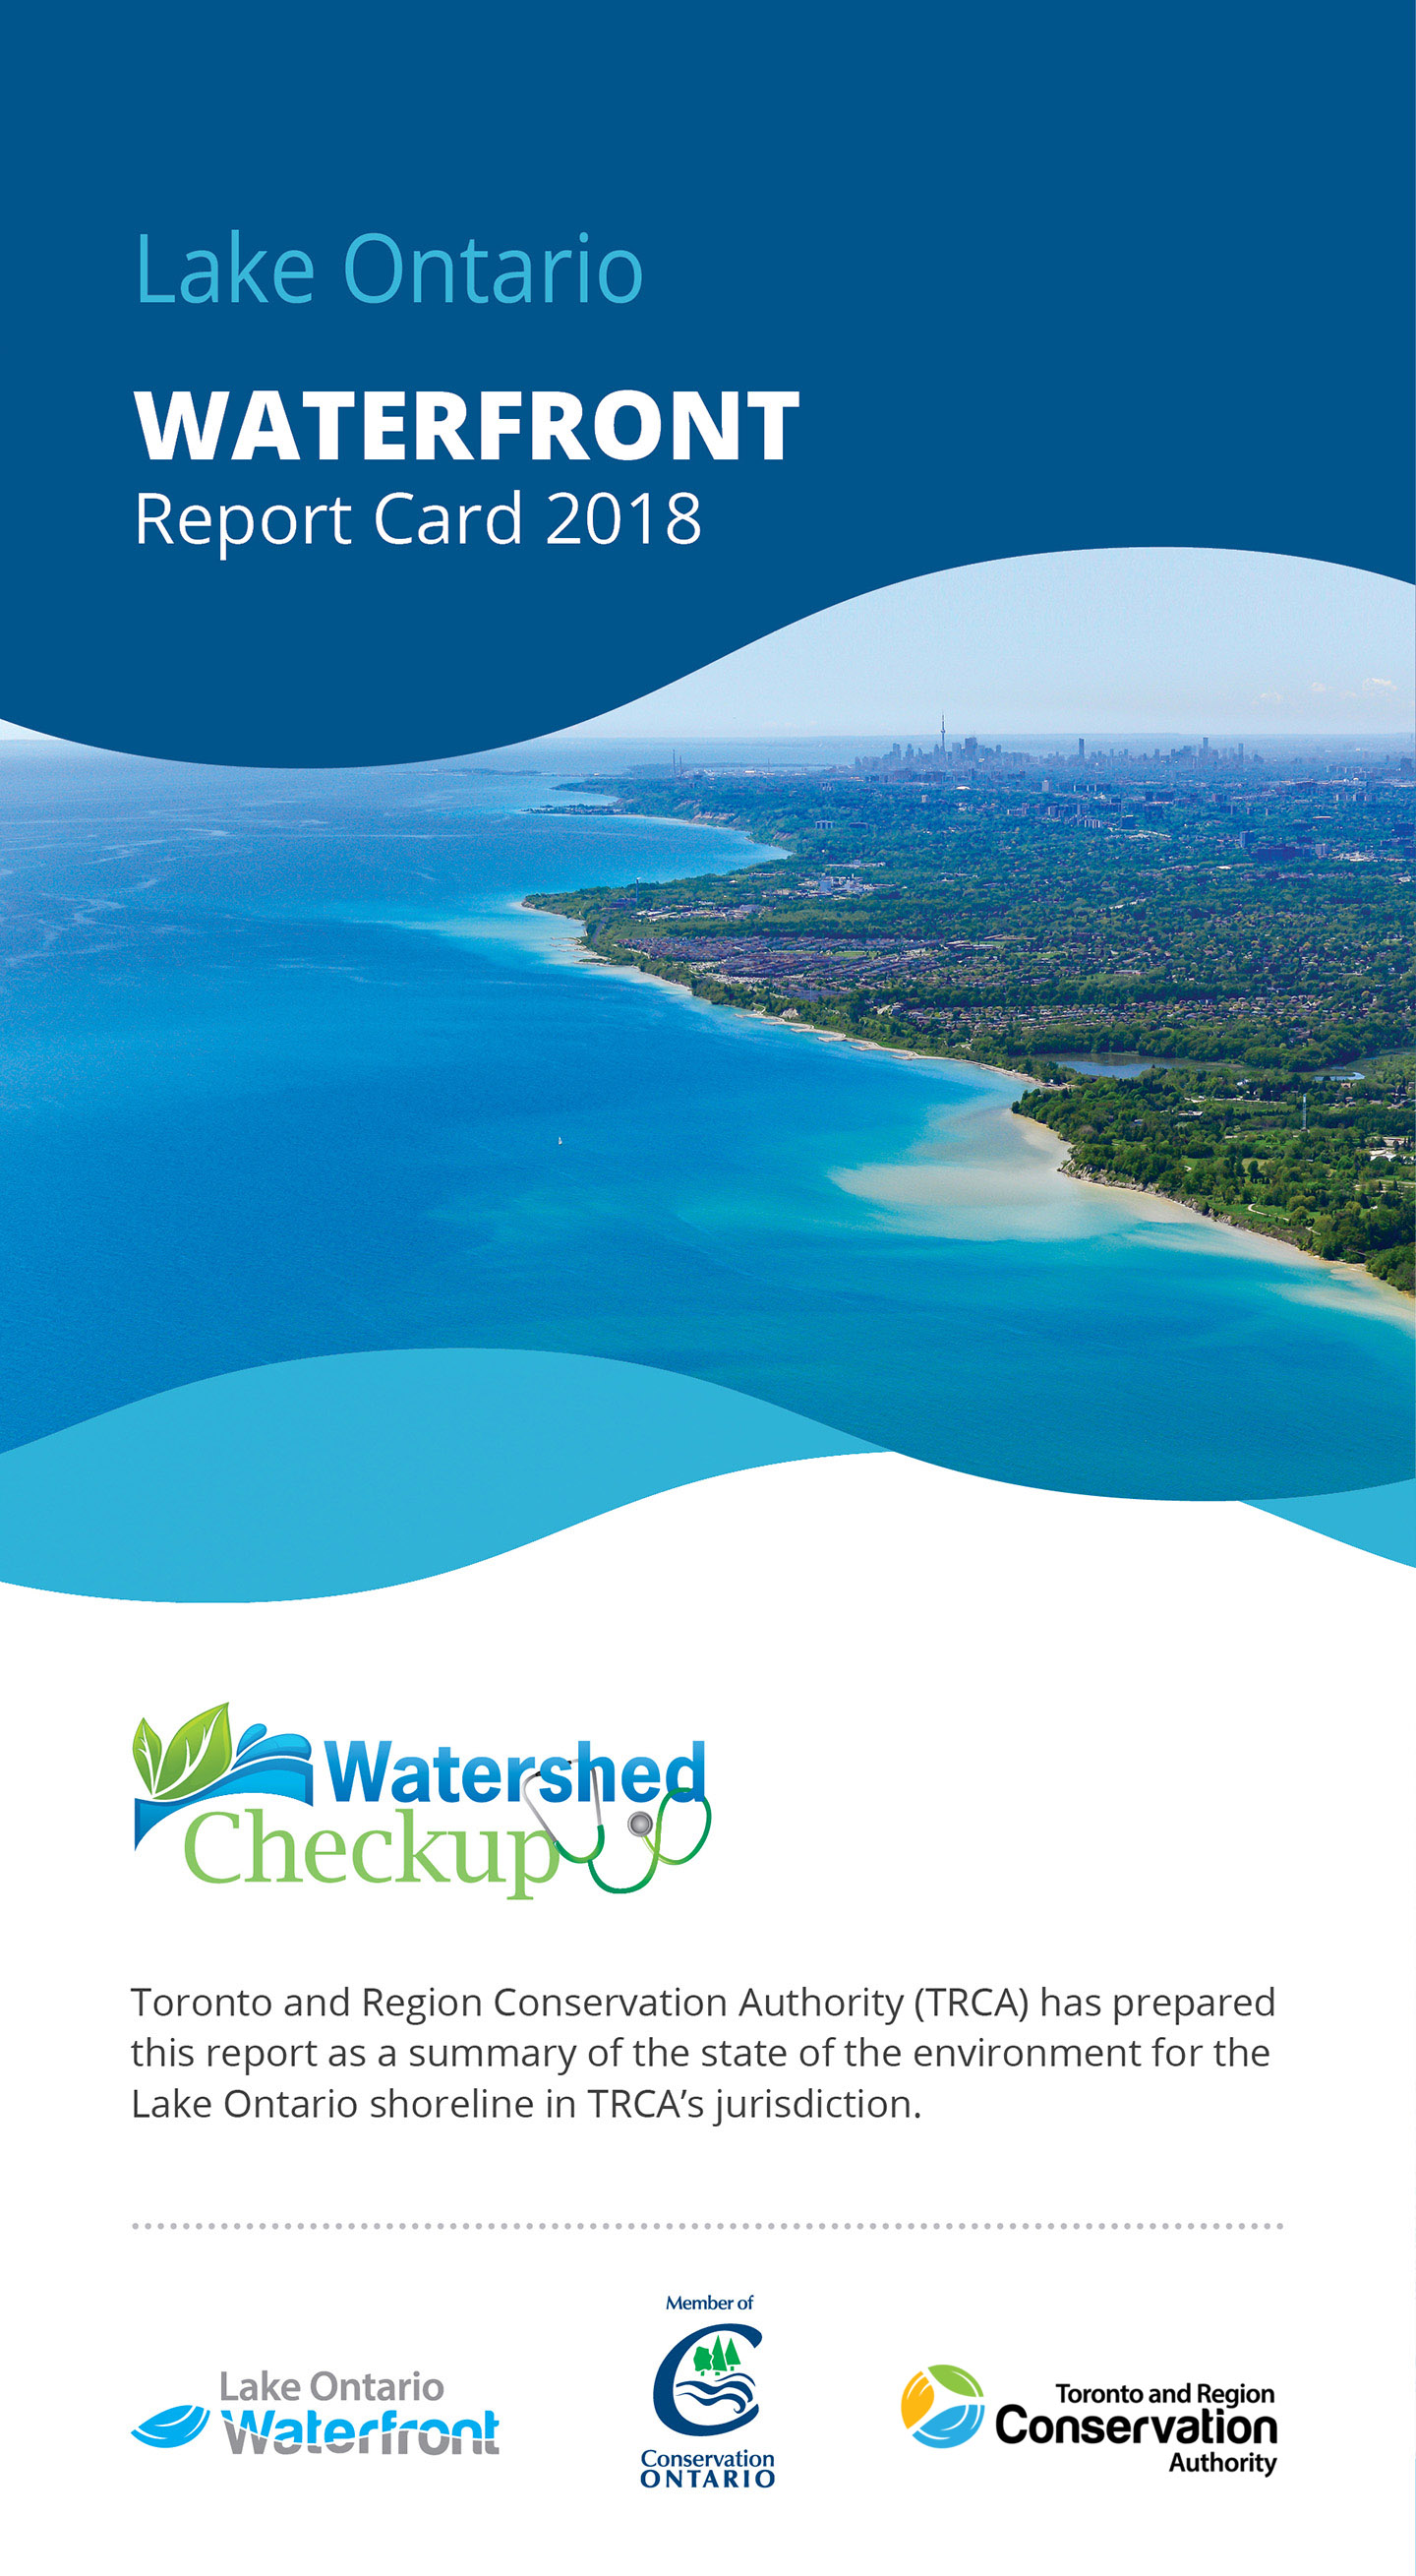 front panel of Lake Ontario Waterfront report card